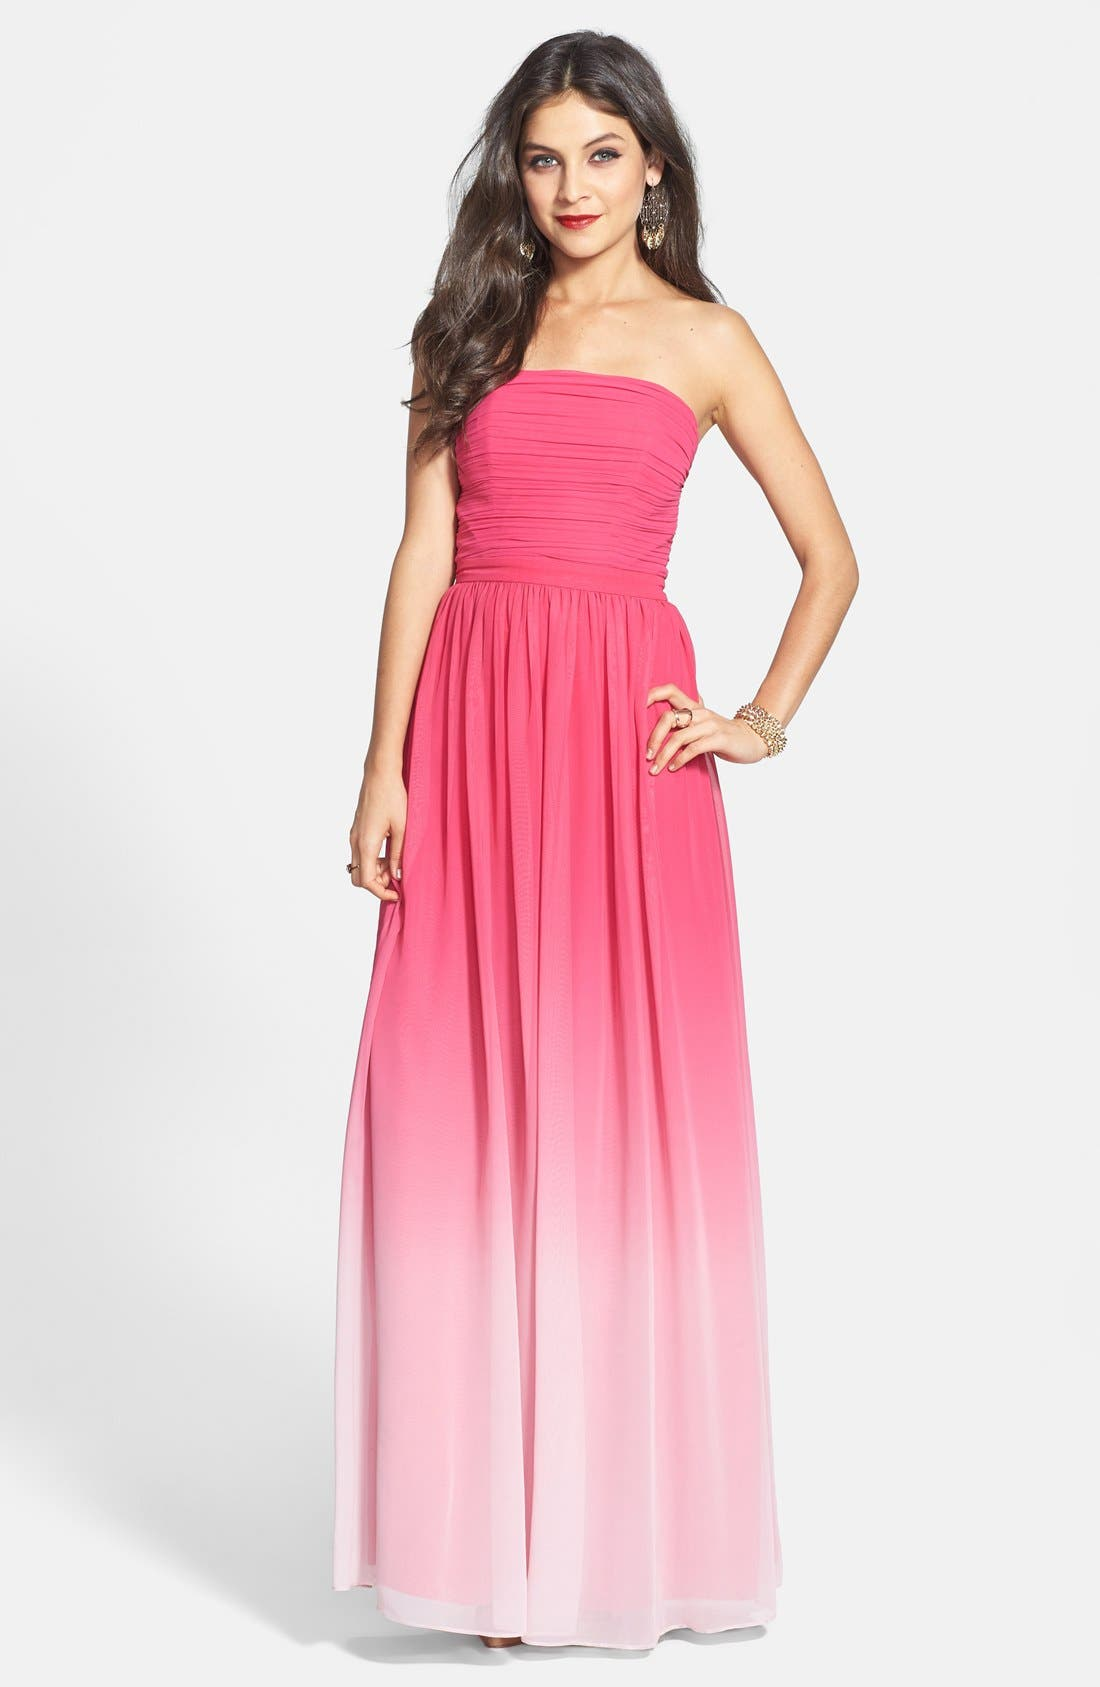 Alternate Image 1 Selected - ERIN erin fetherston 'Isabelle' Ombré Chiffon Gown